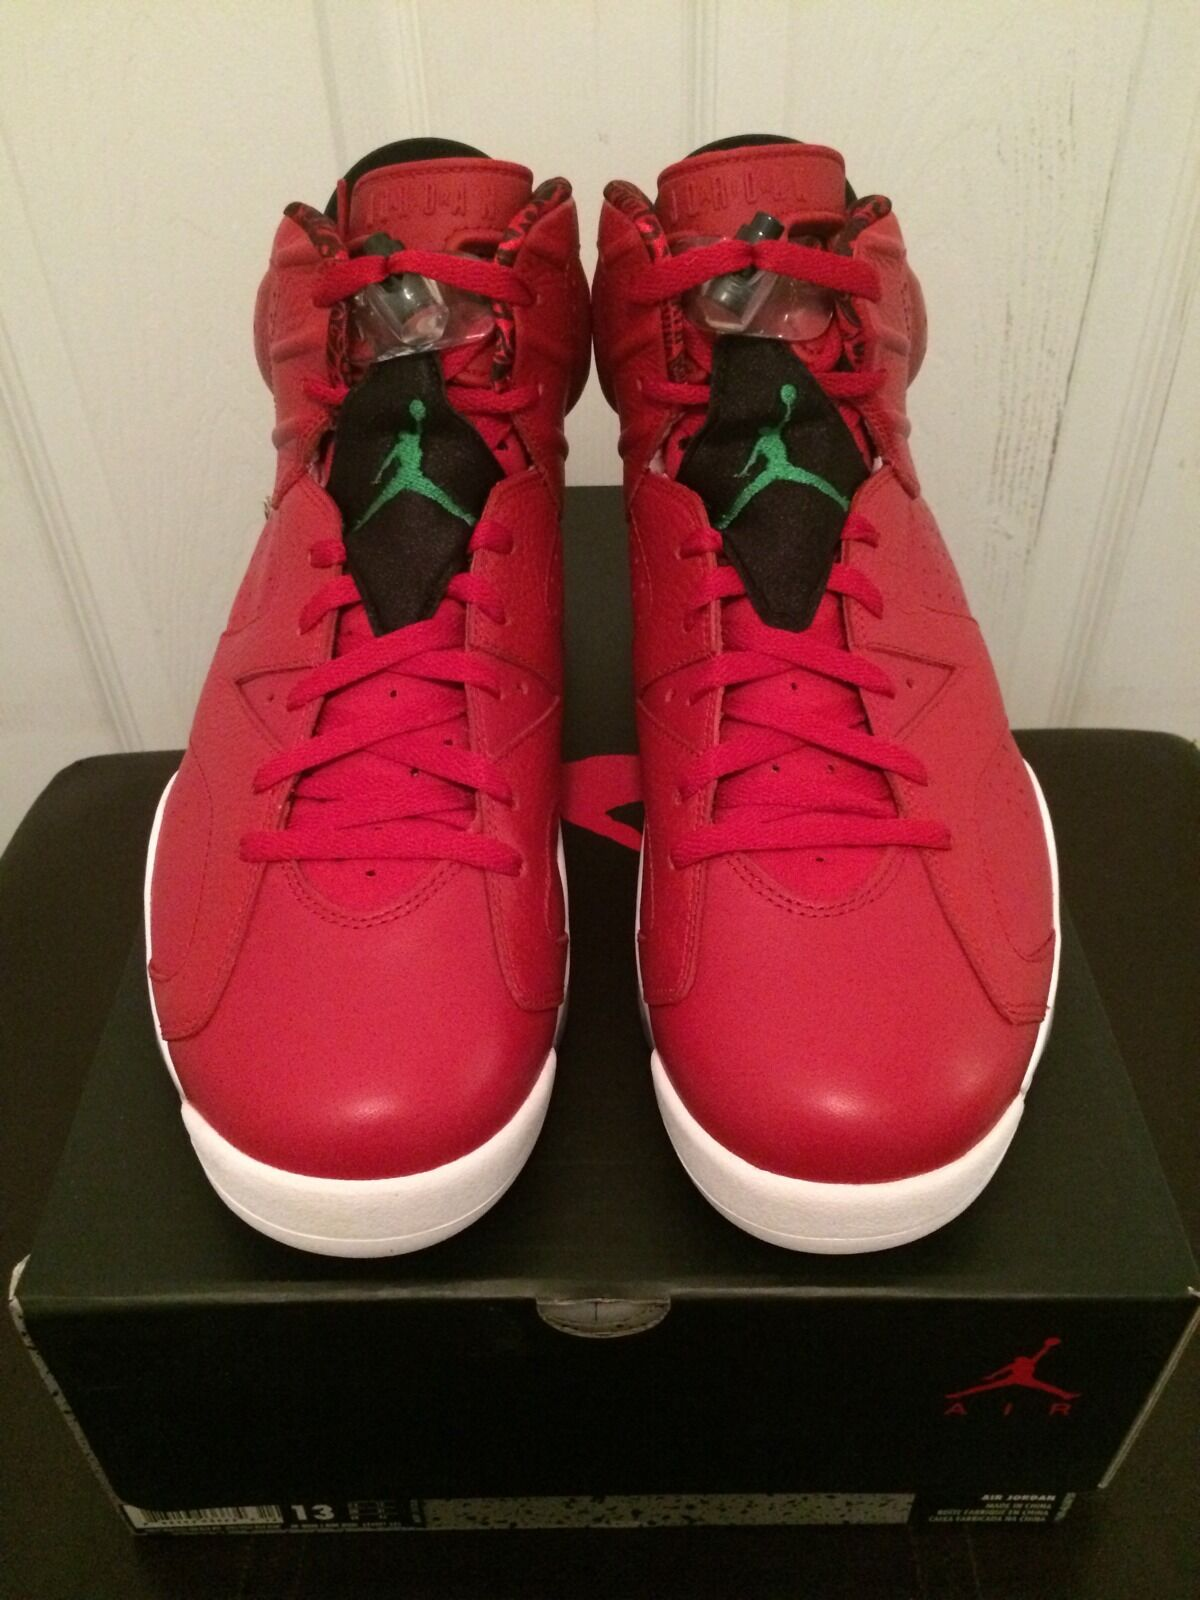 Nike Air Jordan 6 VI Retro Spizike 40 Acres Varsity Red Green 694091 625 Sz 13 Cheap and beautiful fashion